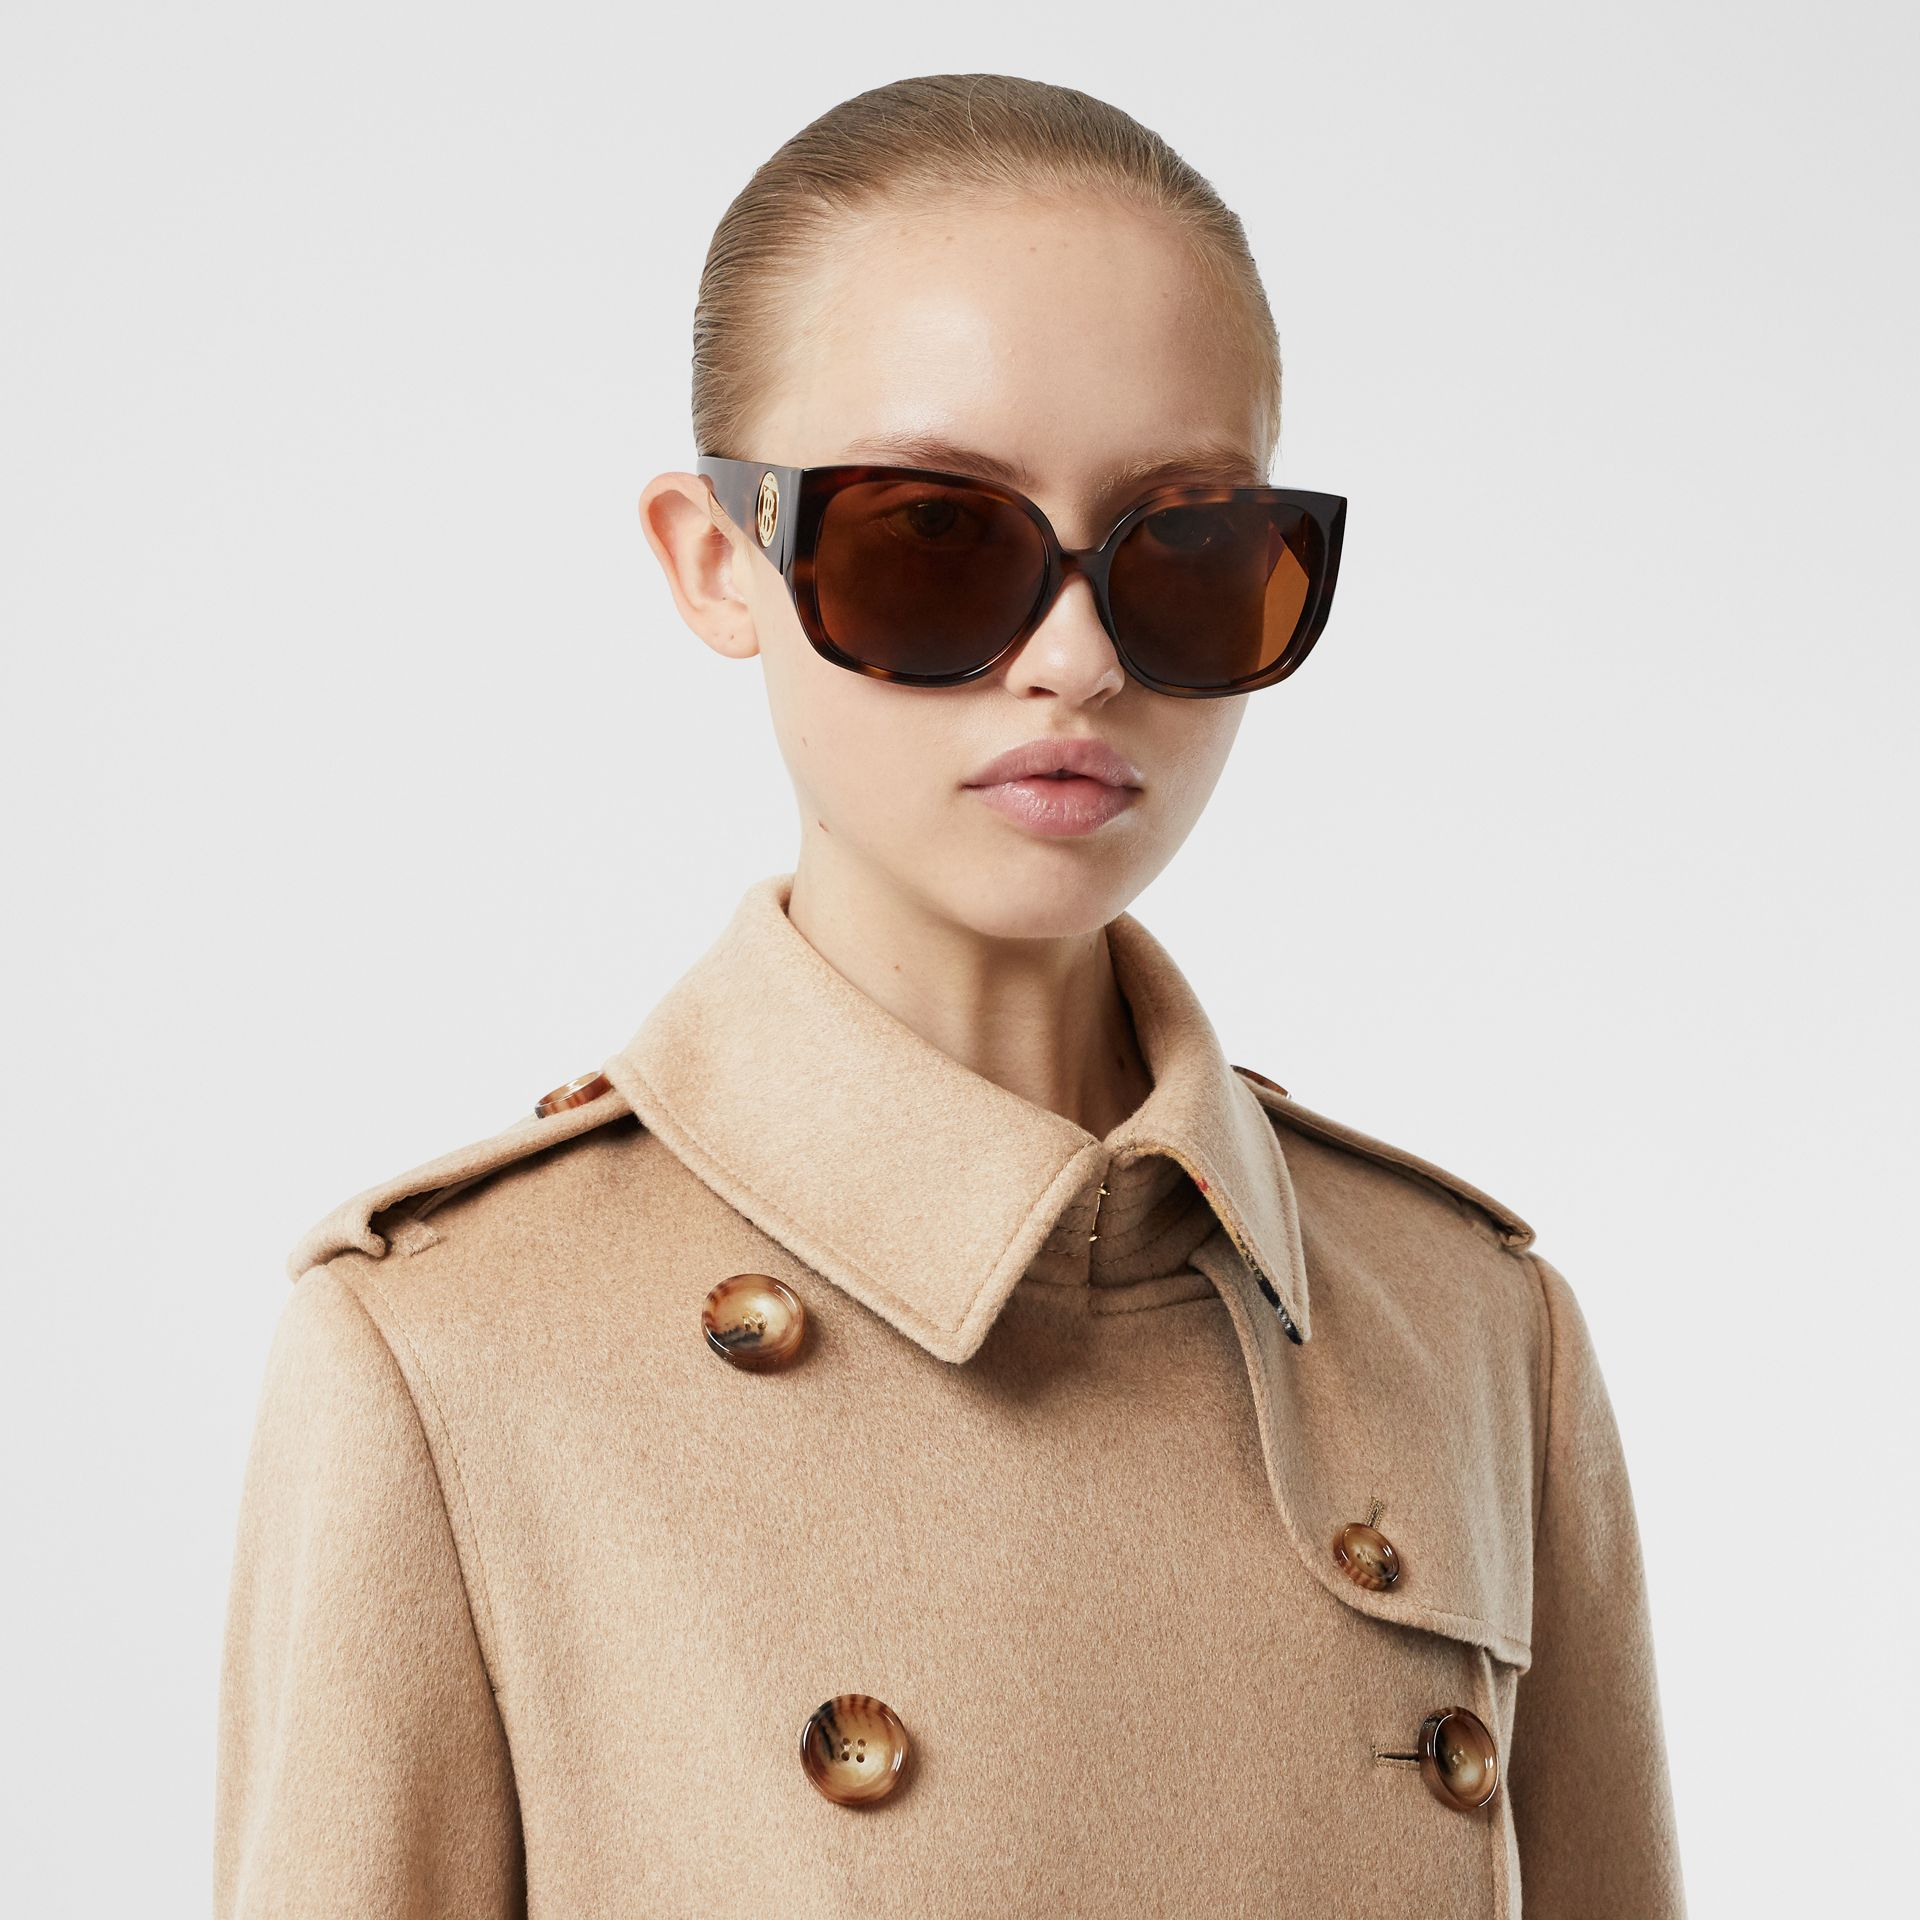 Cashmere Trench Coat in Camel - Women | Burberry Hong Kong S.A.R - gallery image 1